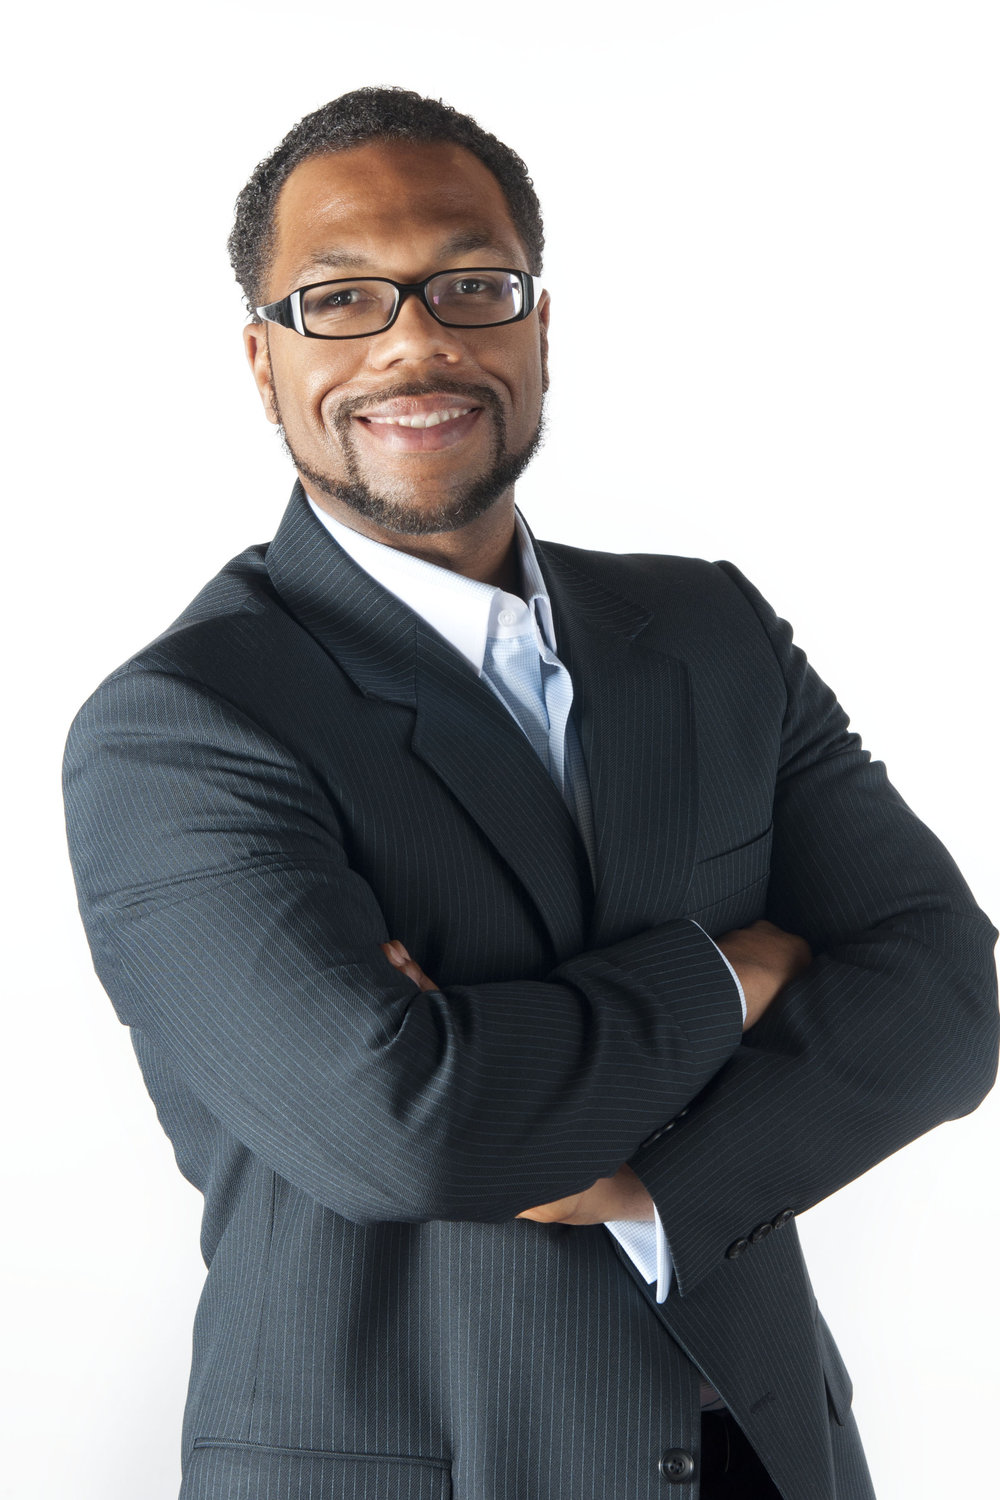 DAmus smith , President, damus dynamic llc